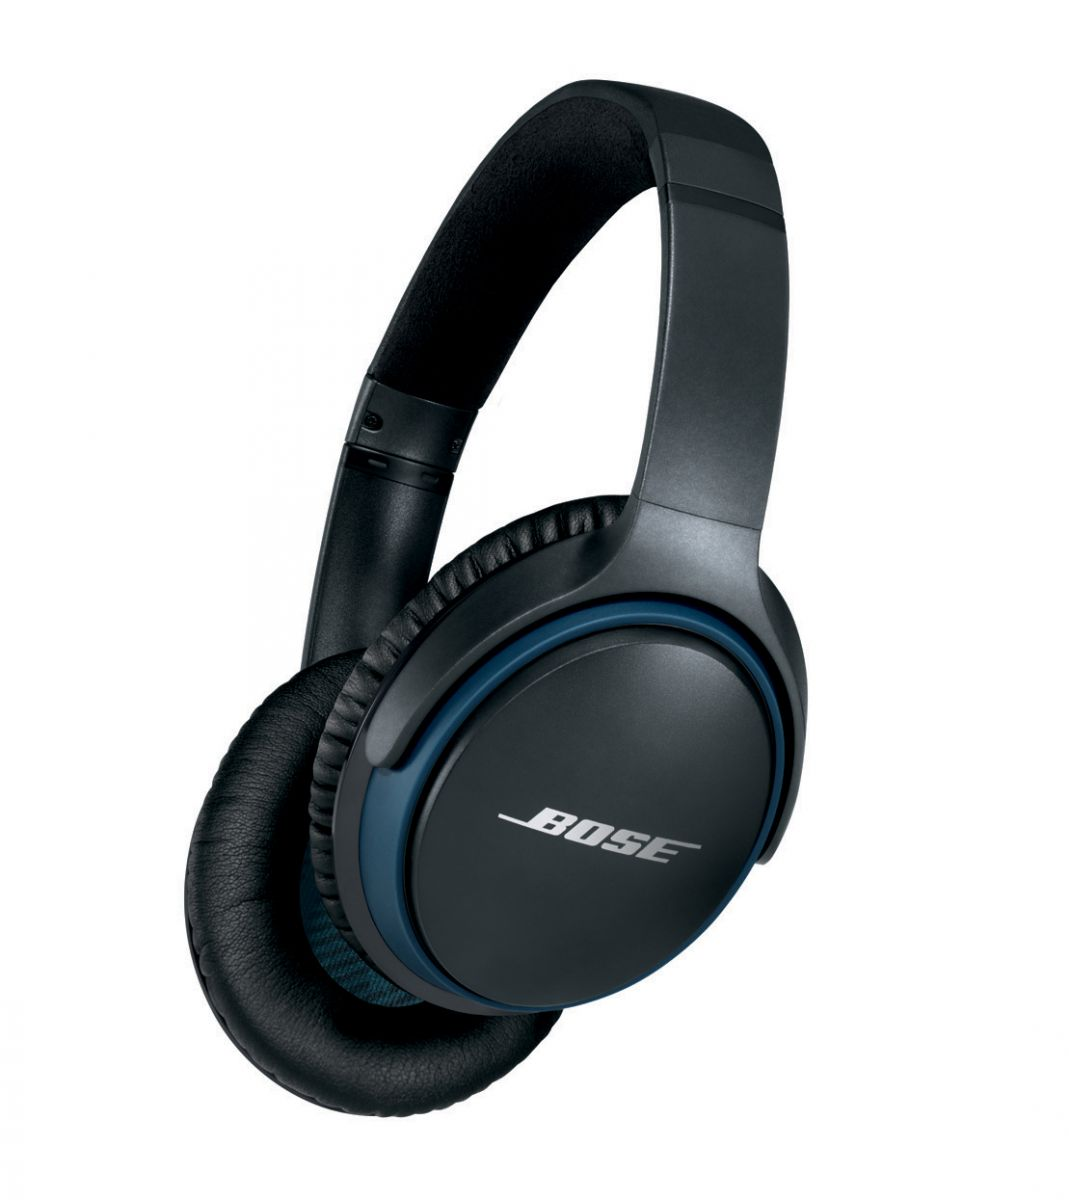 bose qc35 ii user guide